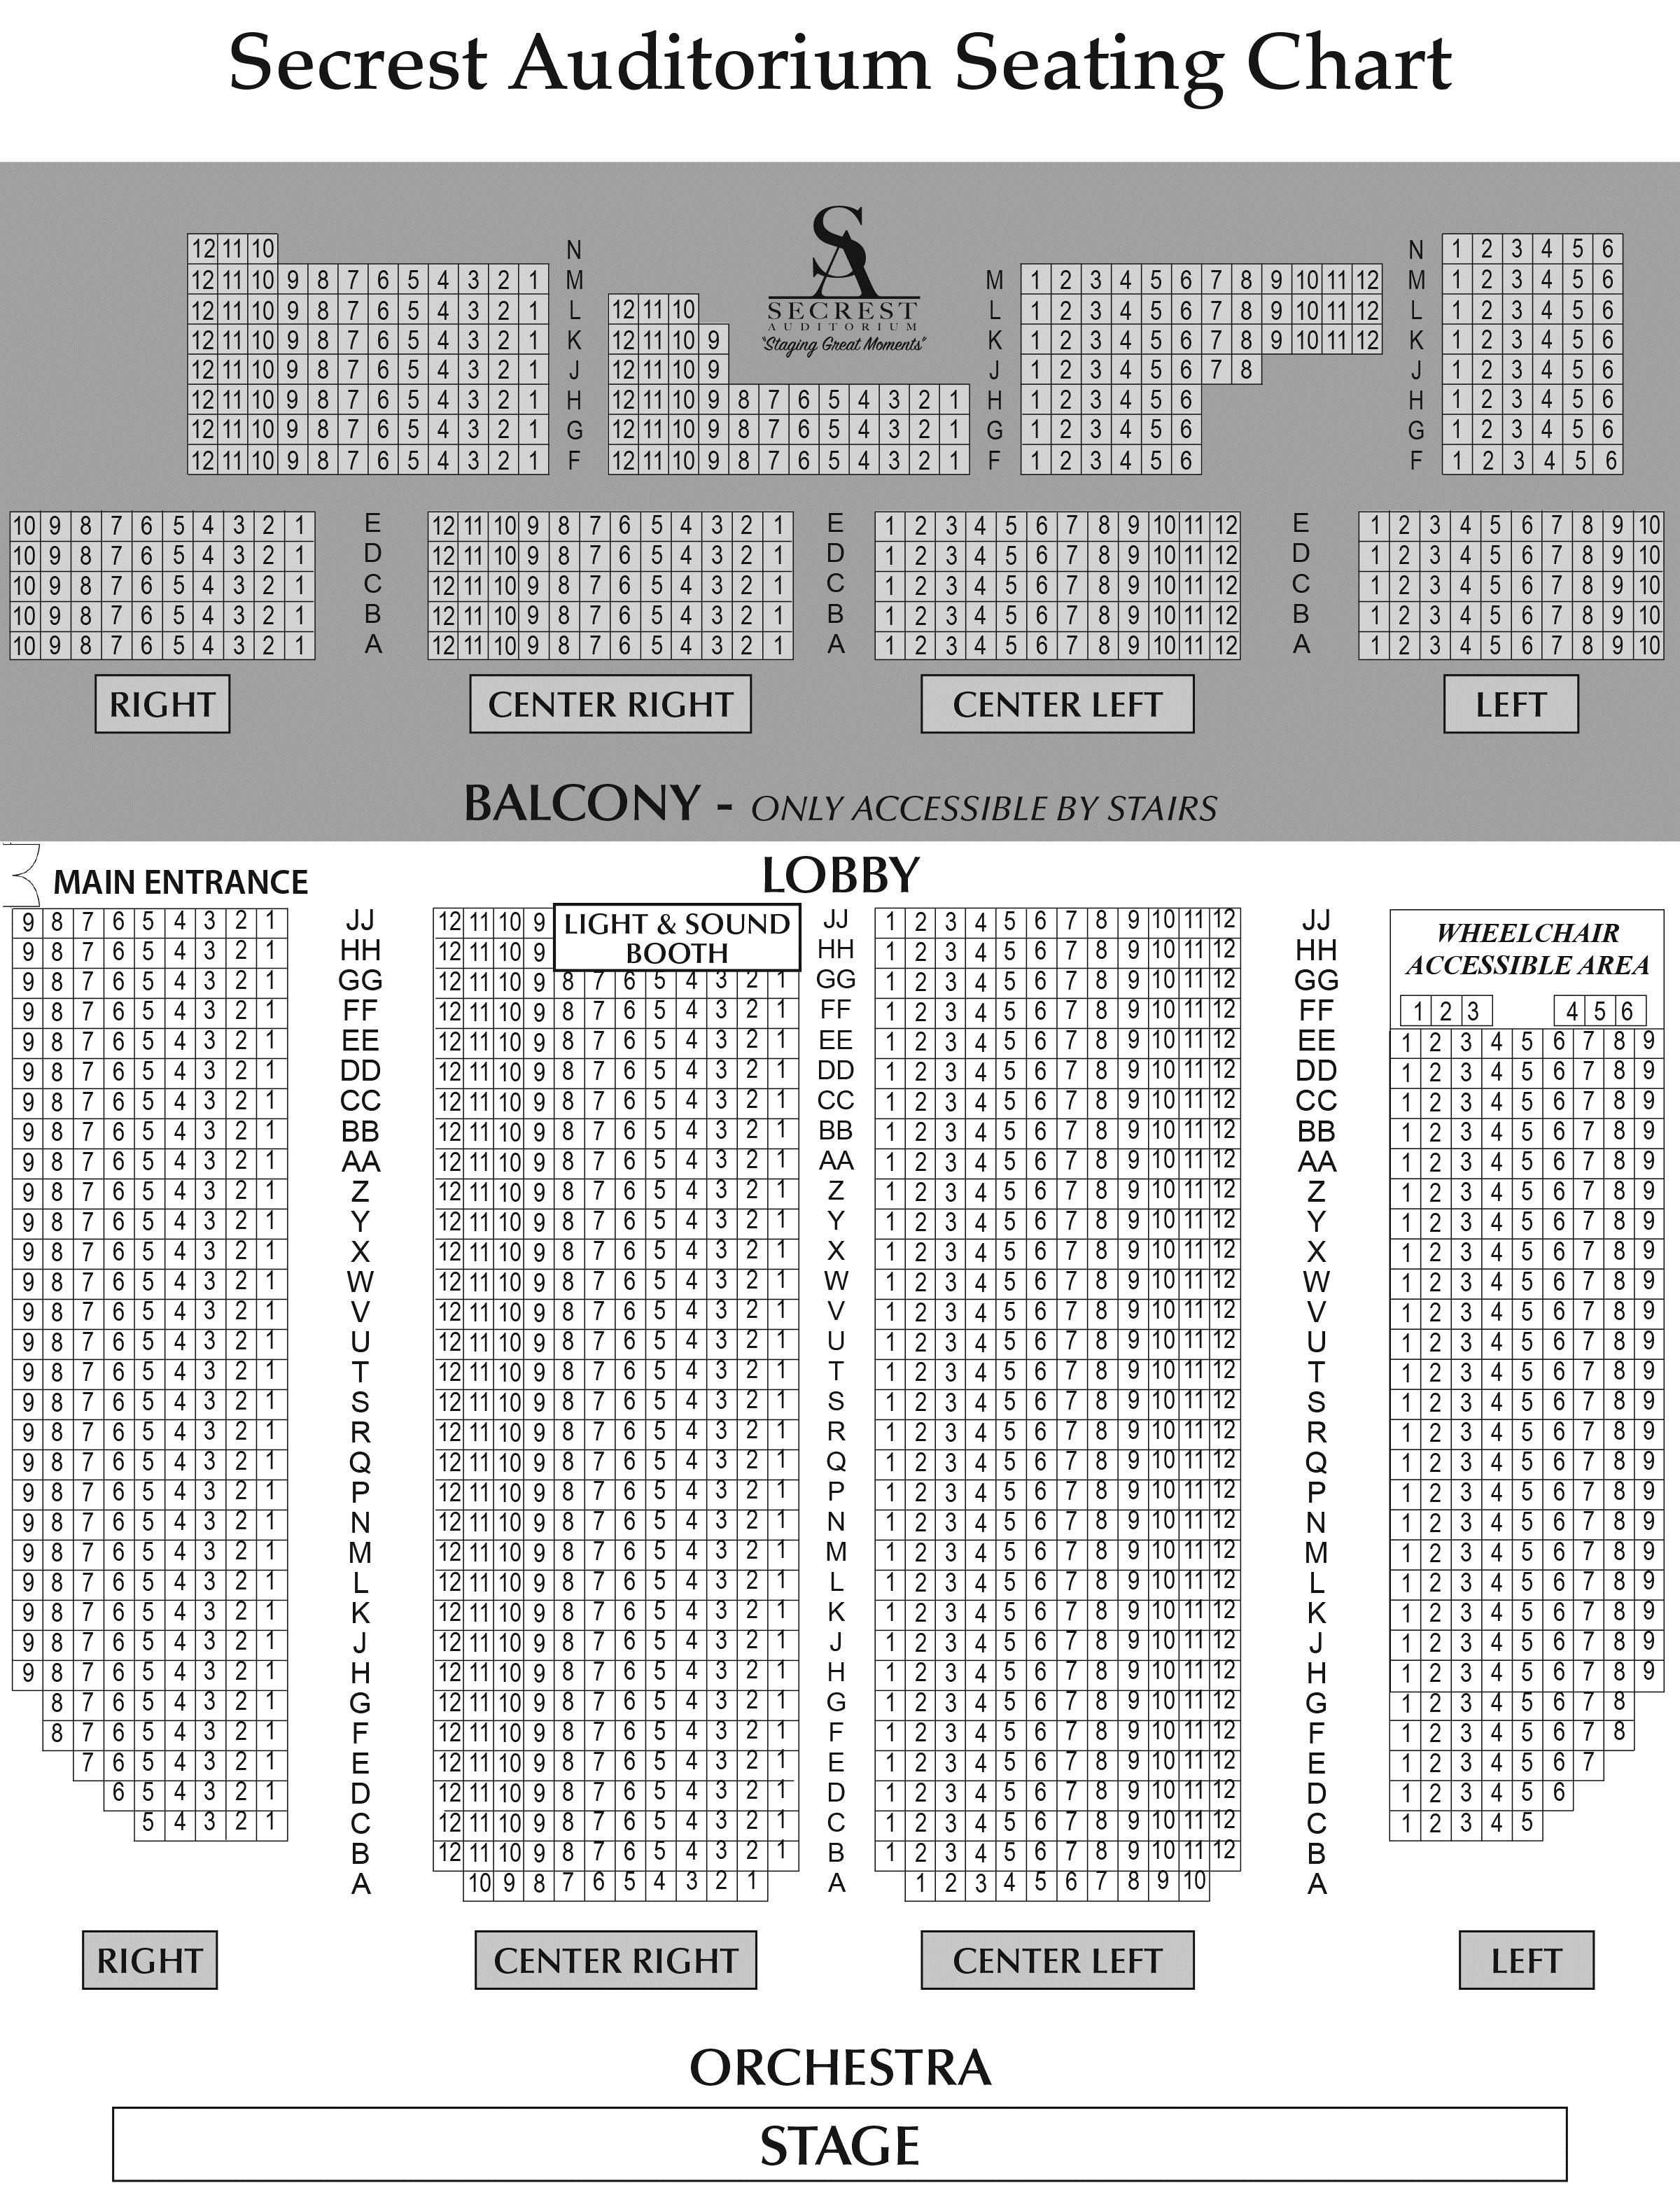 Secrest-Auditorium-Seating-Chart